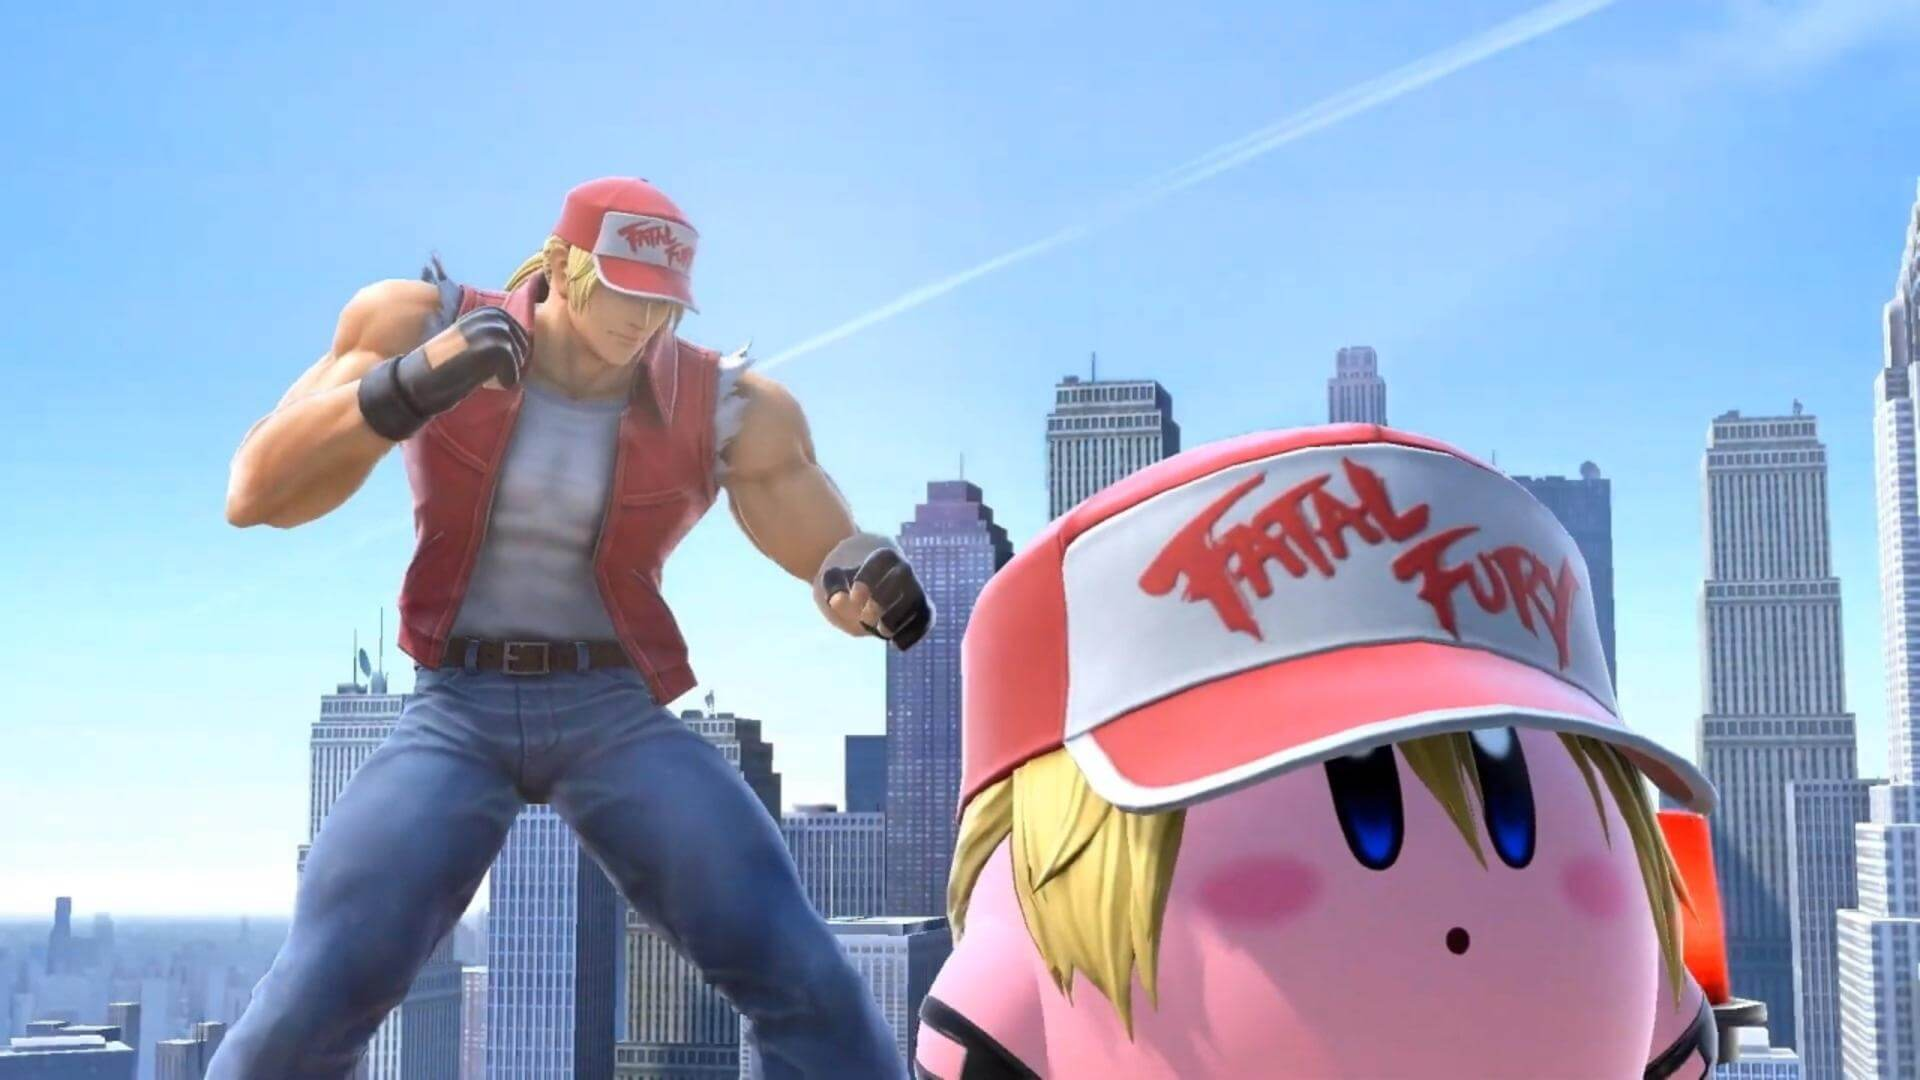 Fatal Fury's Terry Bogard Joins the Fight in Super Smash Bros. Ultimate